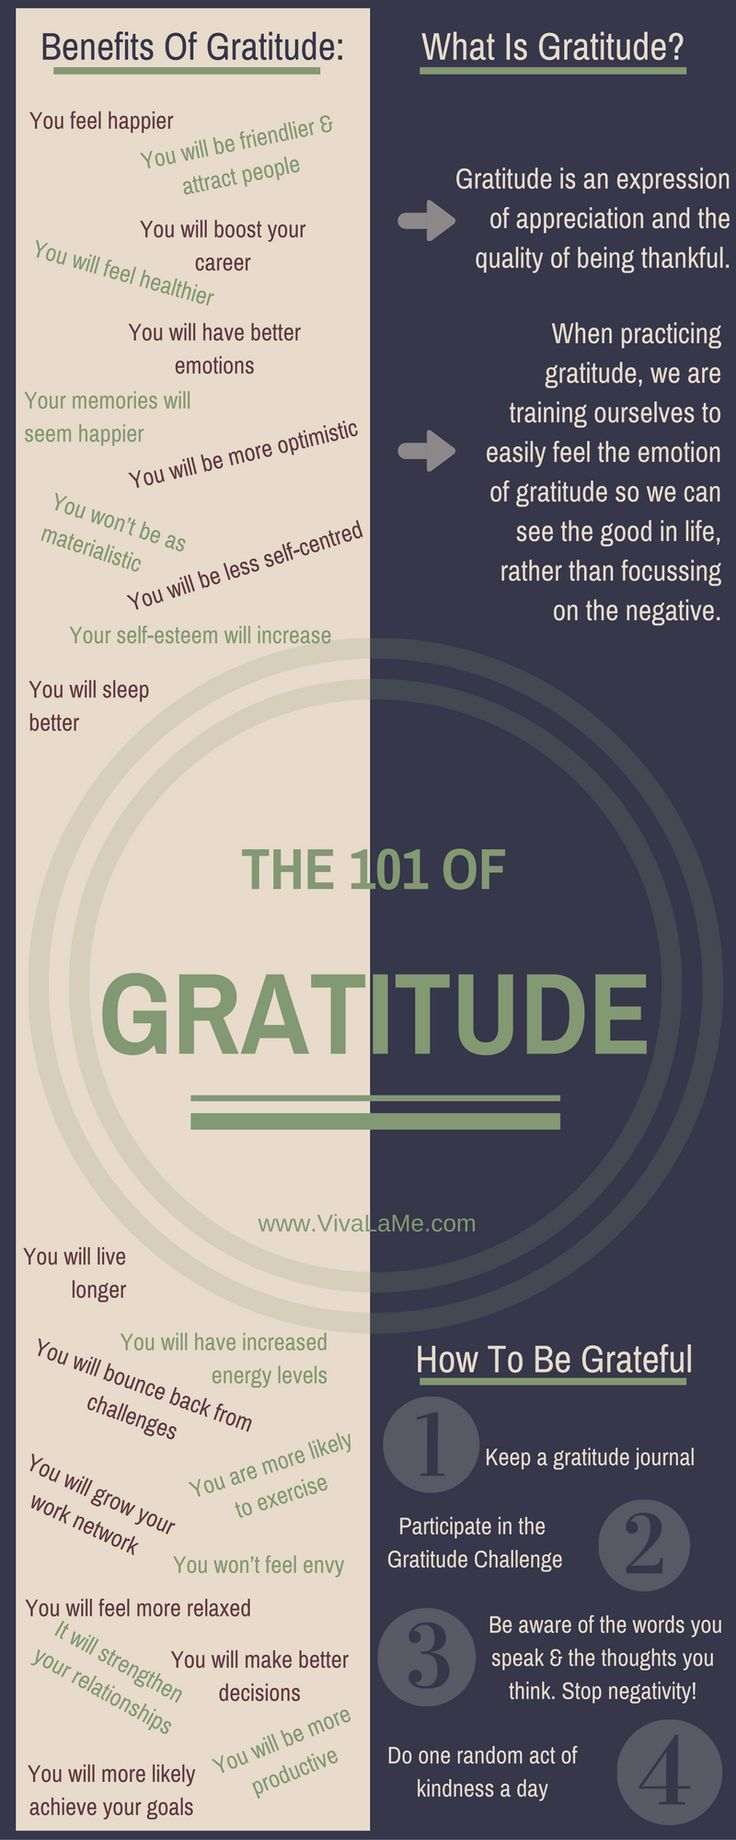 Practicing Gratitude: The 101 Of Gratitude